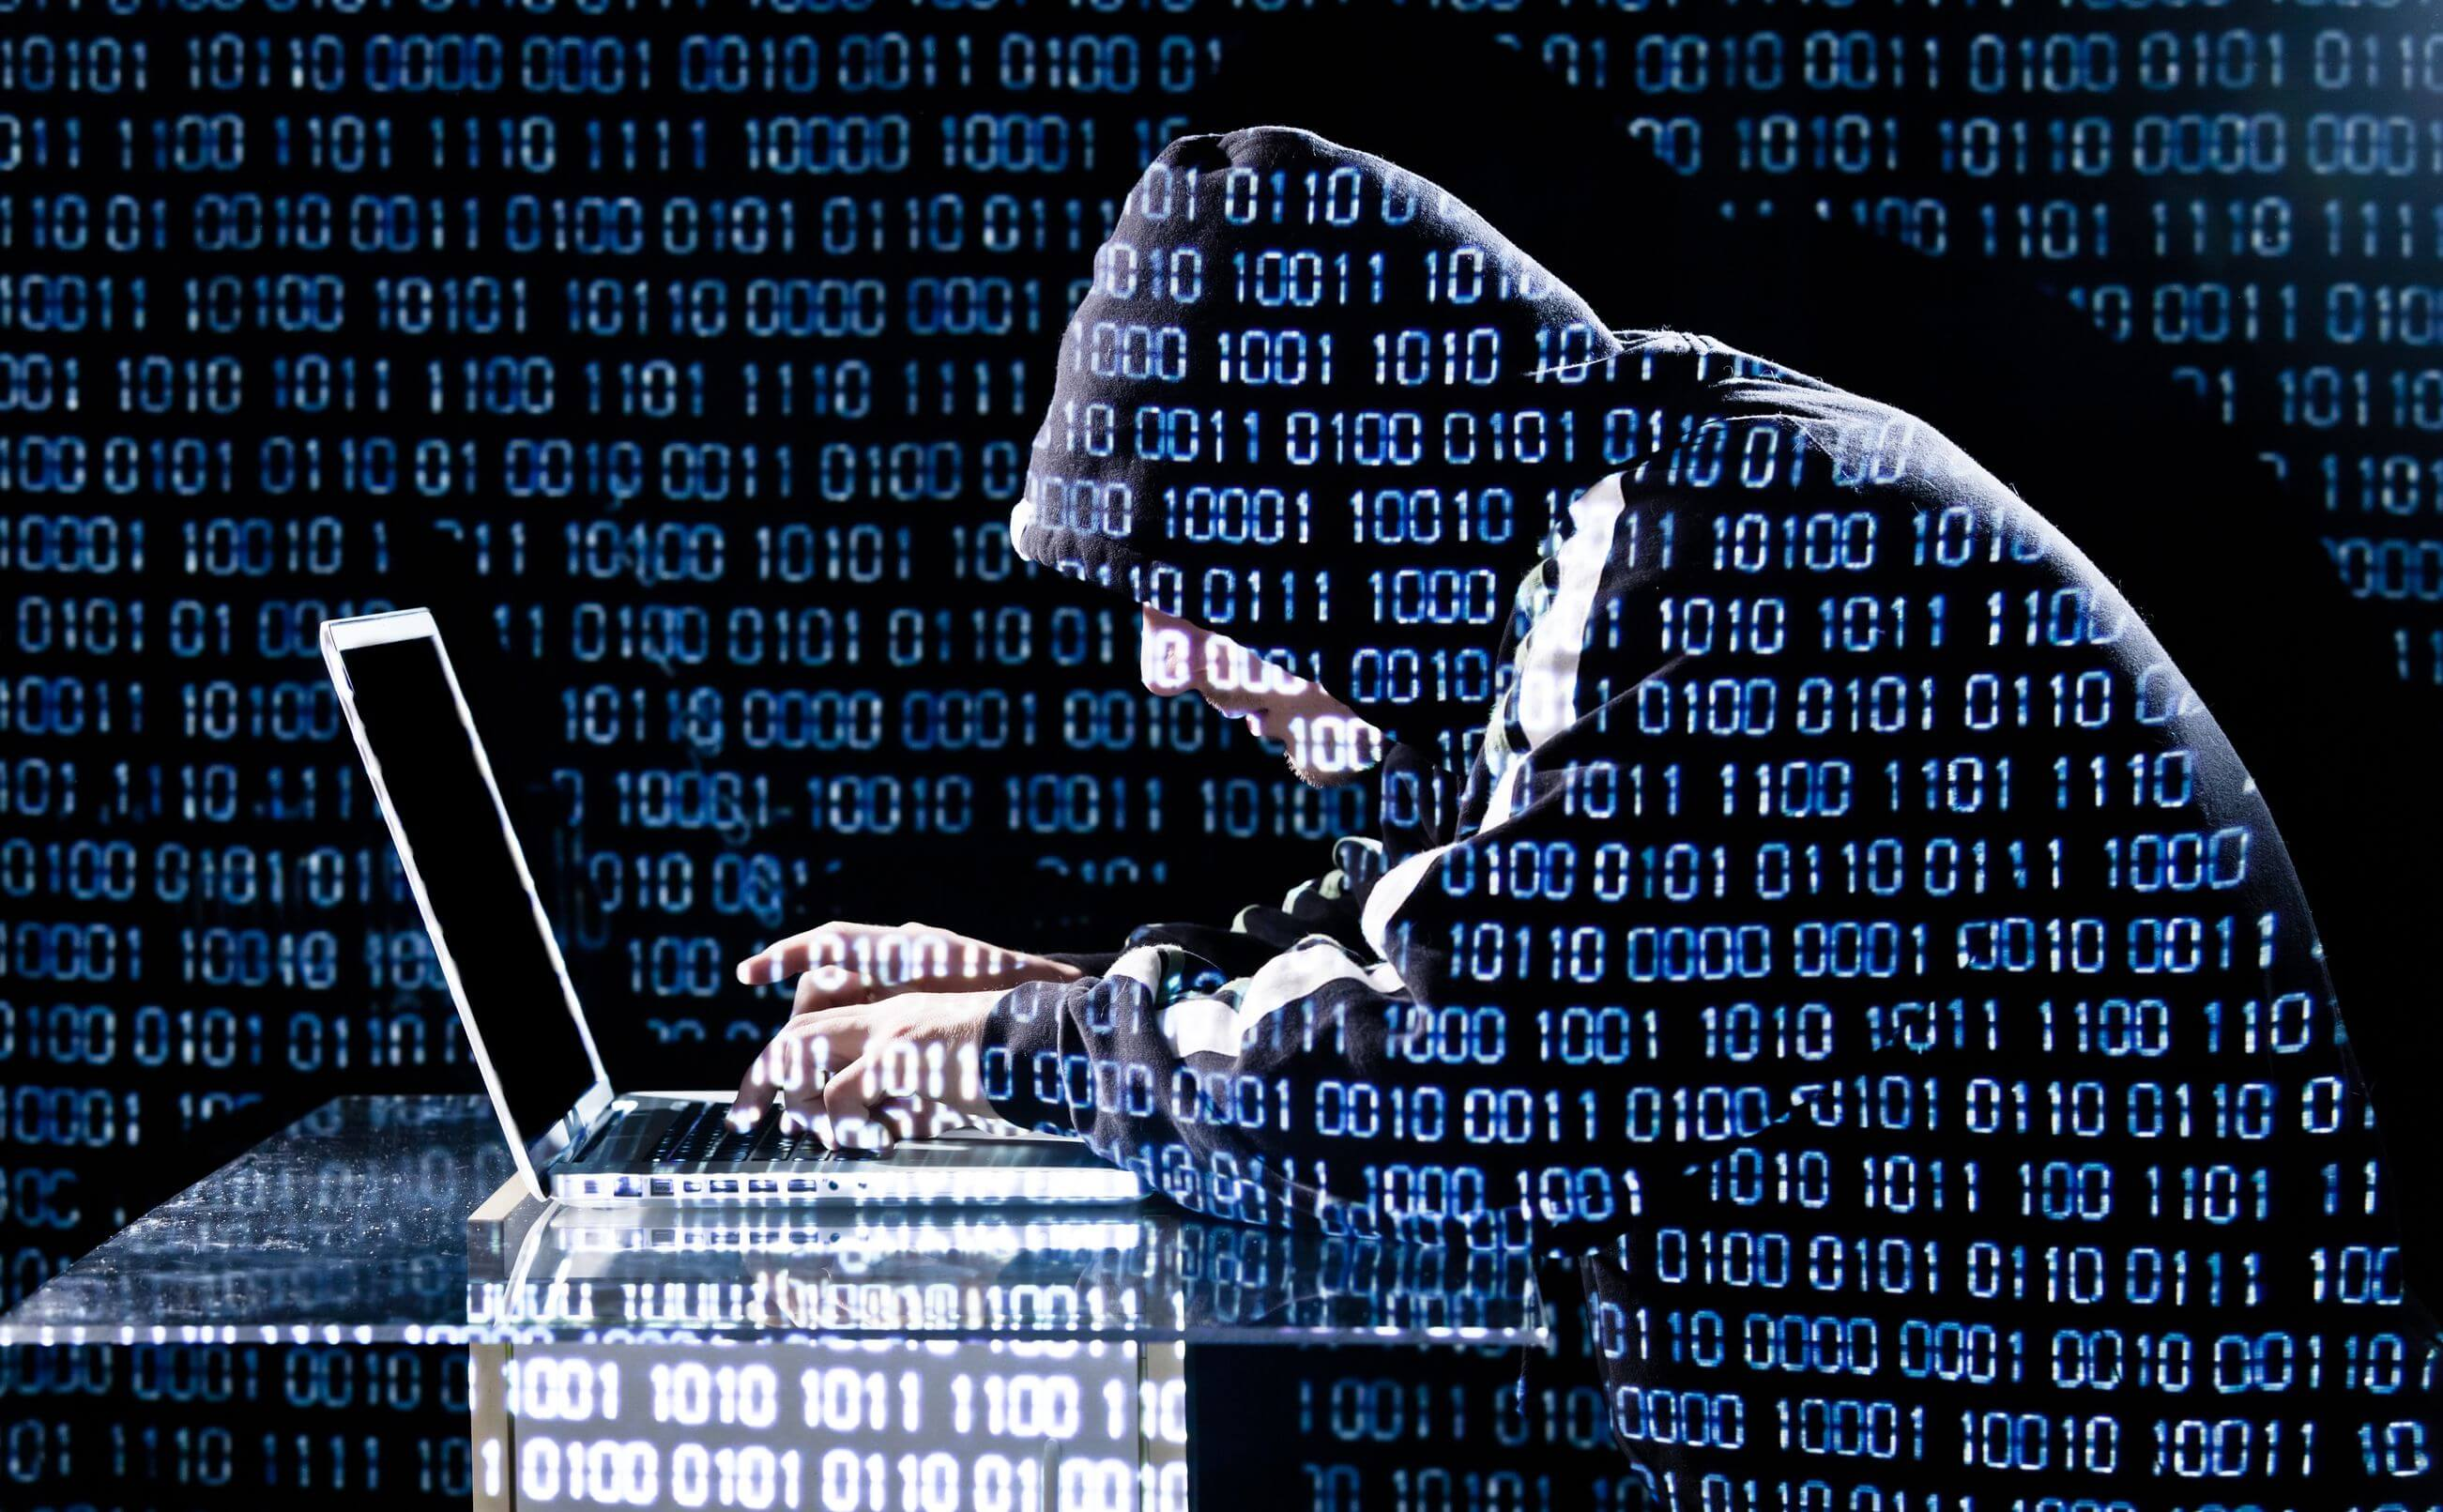 5 ways to protect your company from cyber-attacks